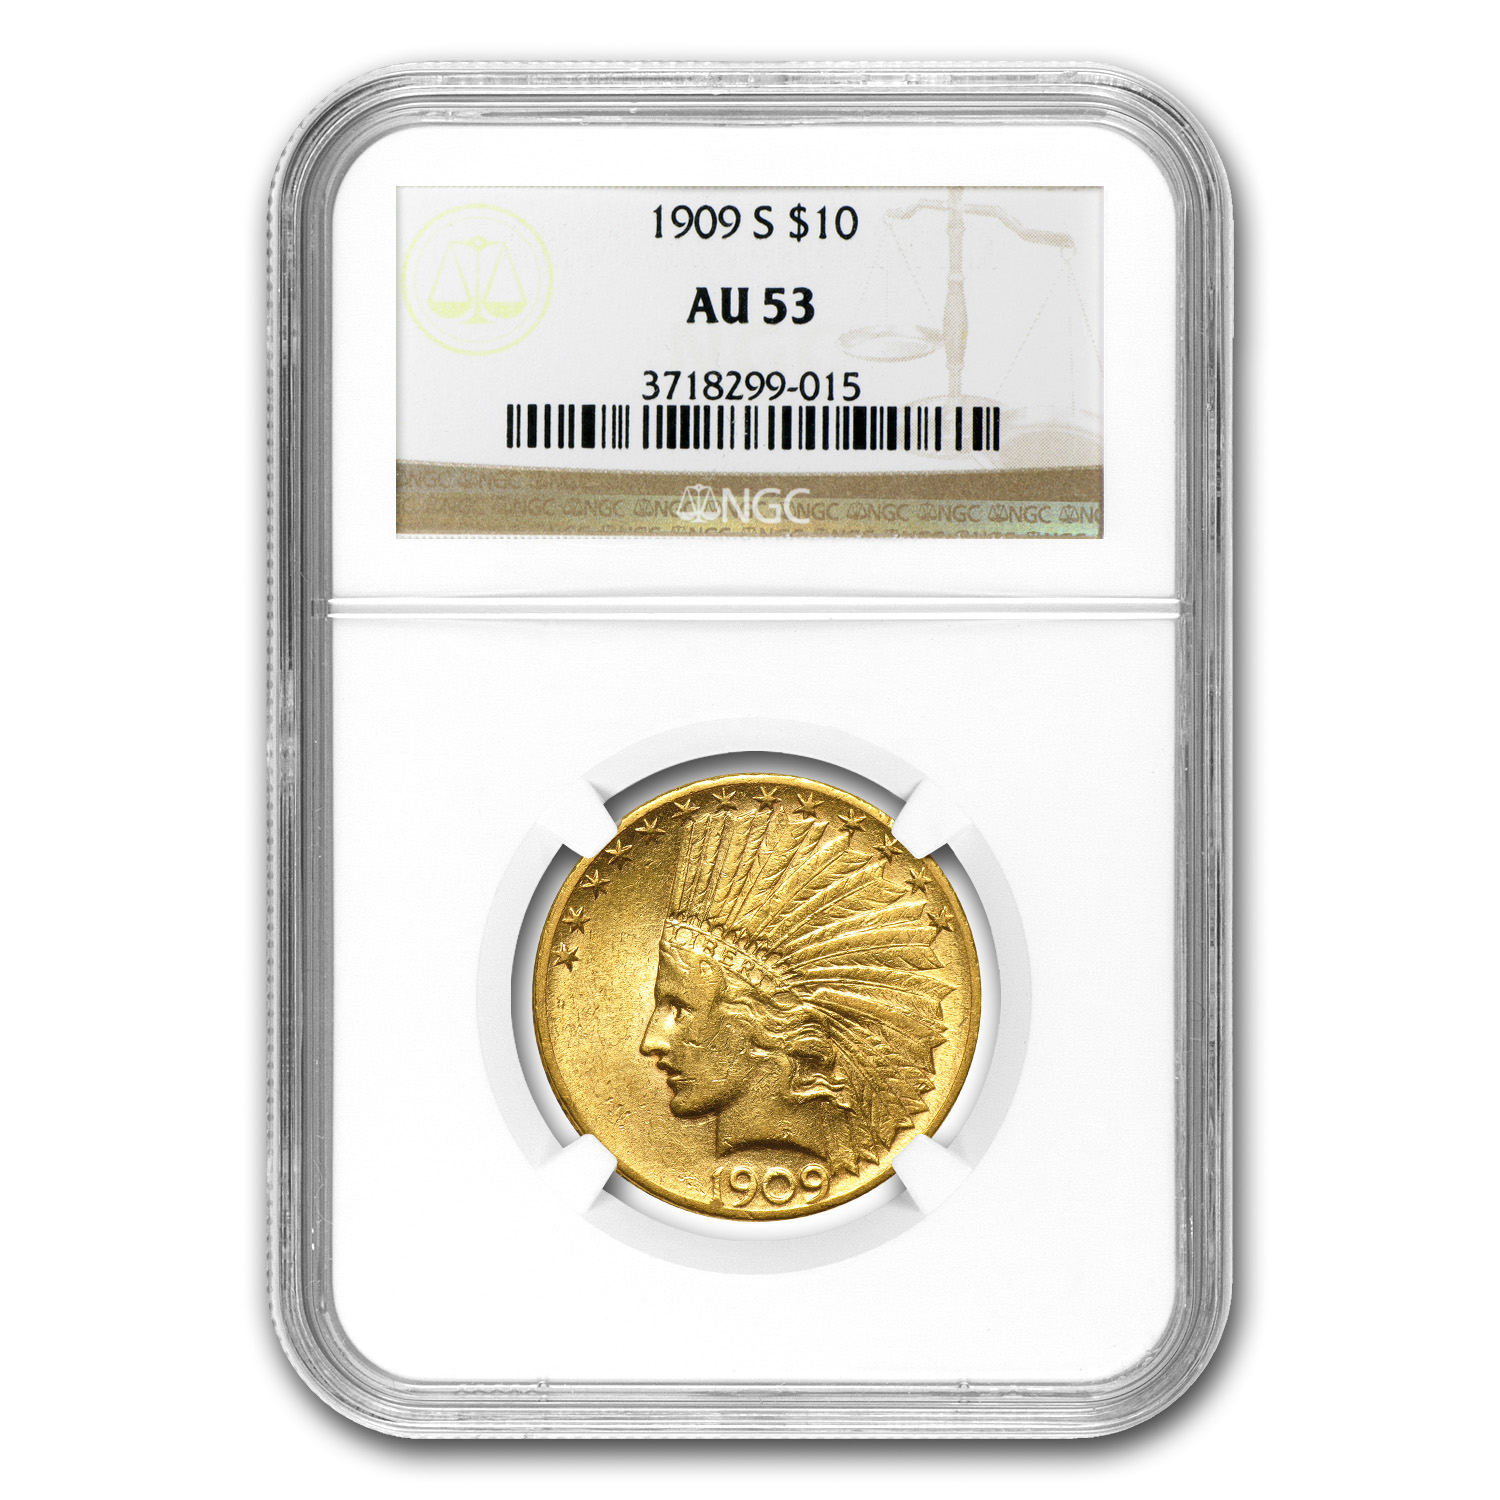 1909-S $10 Indian Gold Eagle - AU-53 NGC